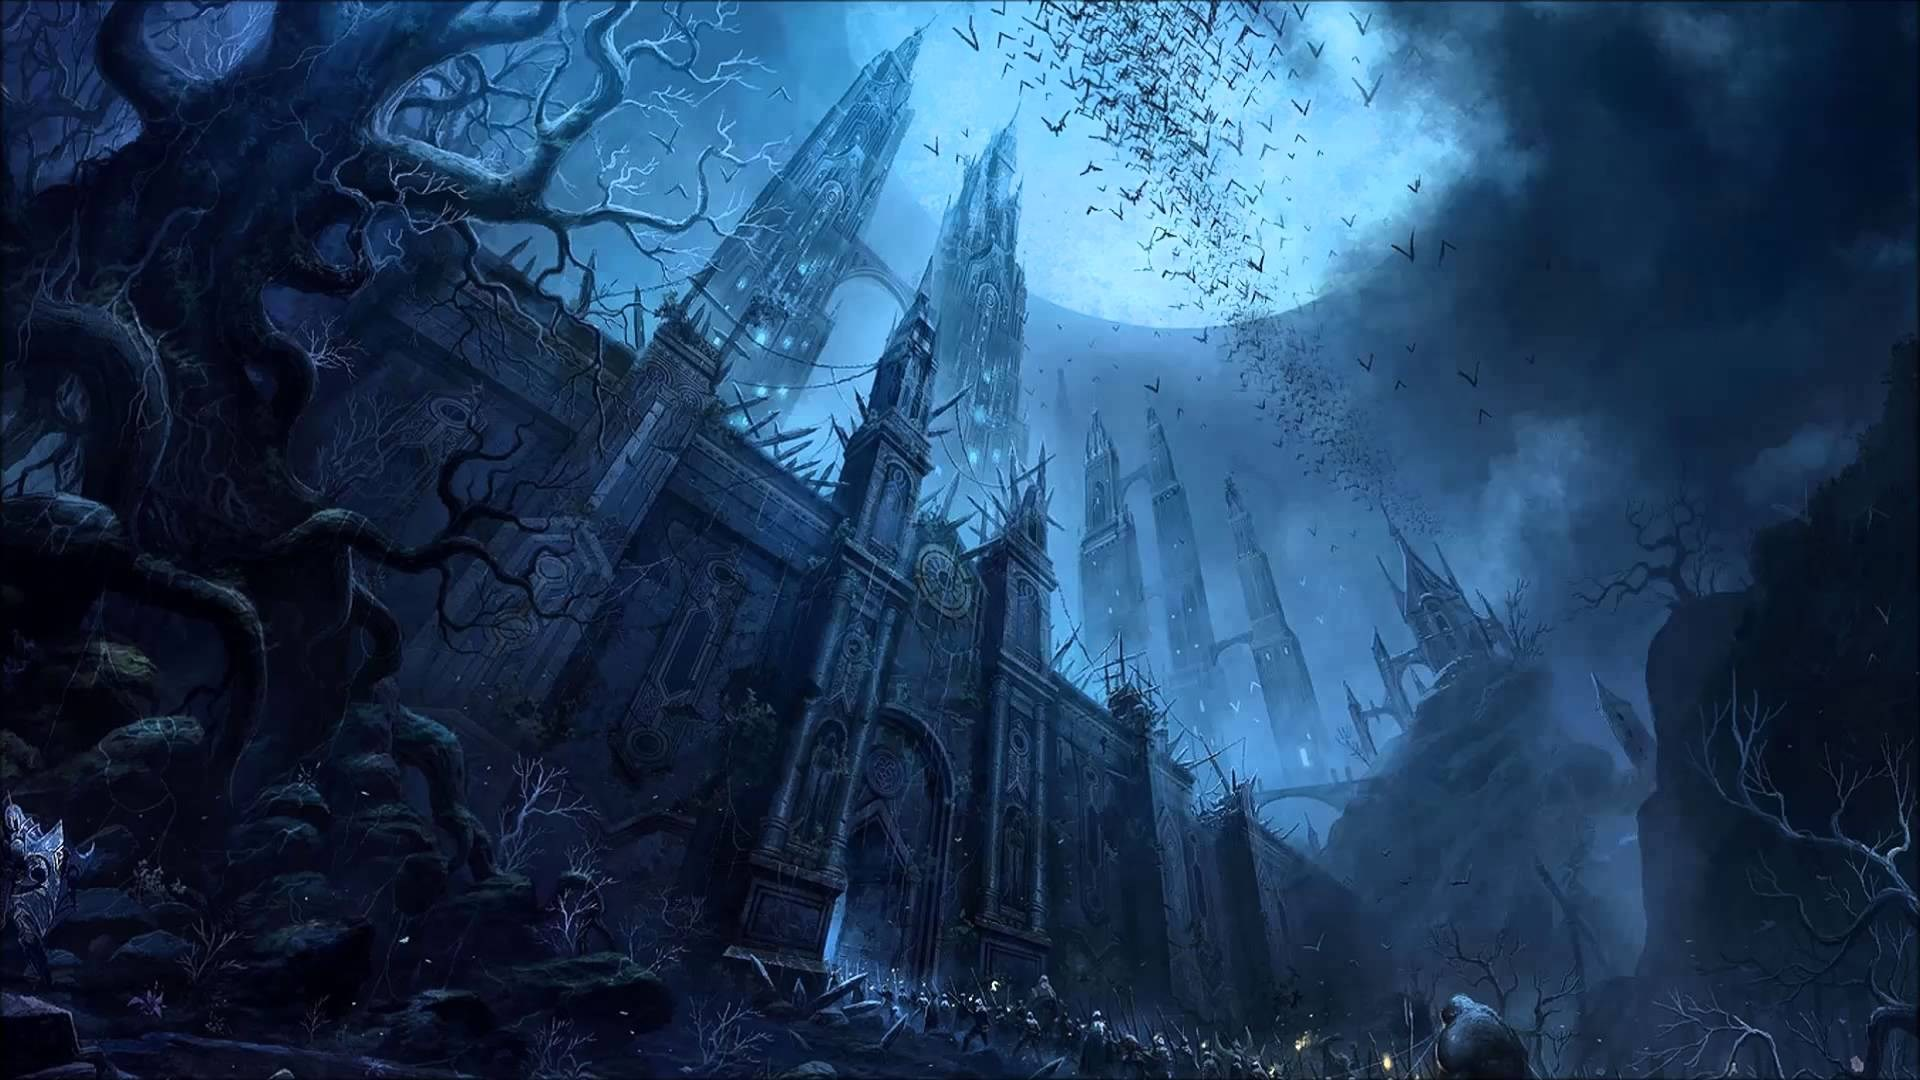 1920x1080-hd-castle-wallpaper-wpc900806